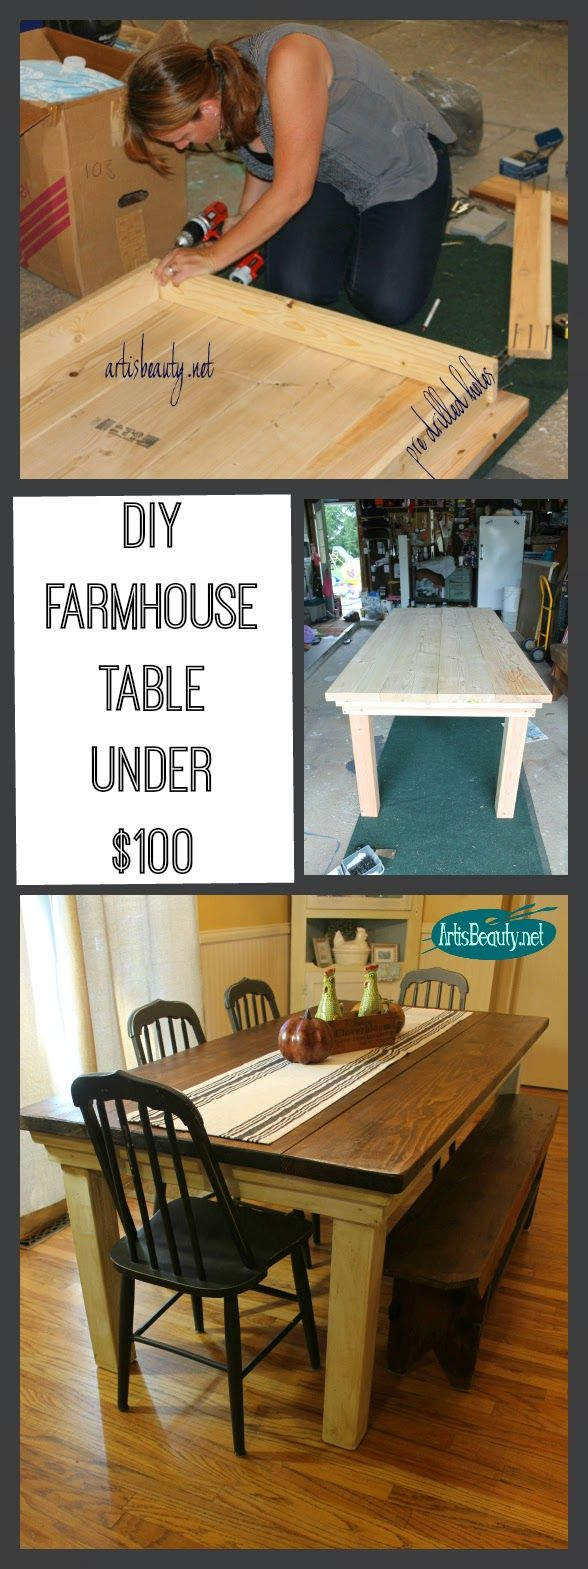 How To Build Your Own Farmhouse Table For Under 100 Diy Projects